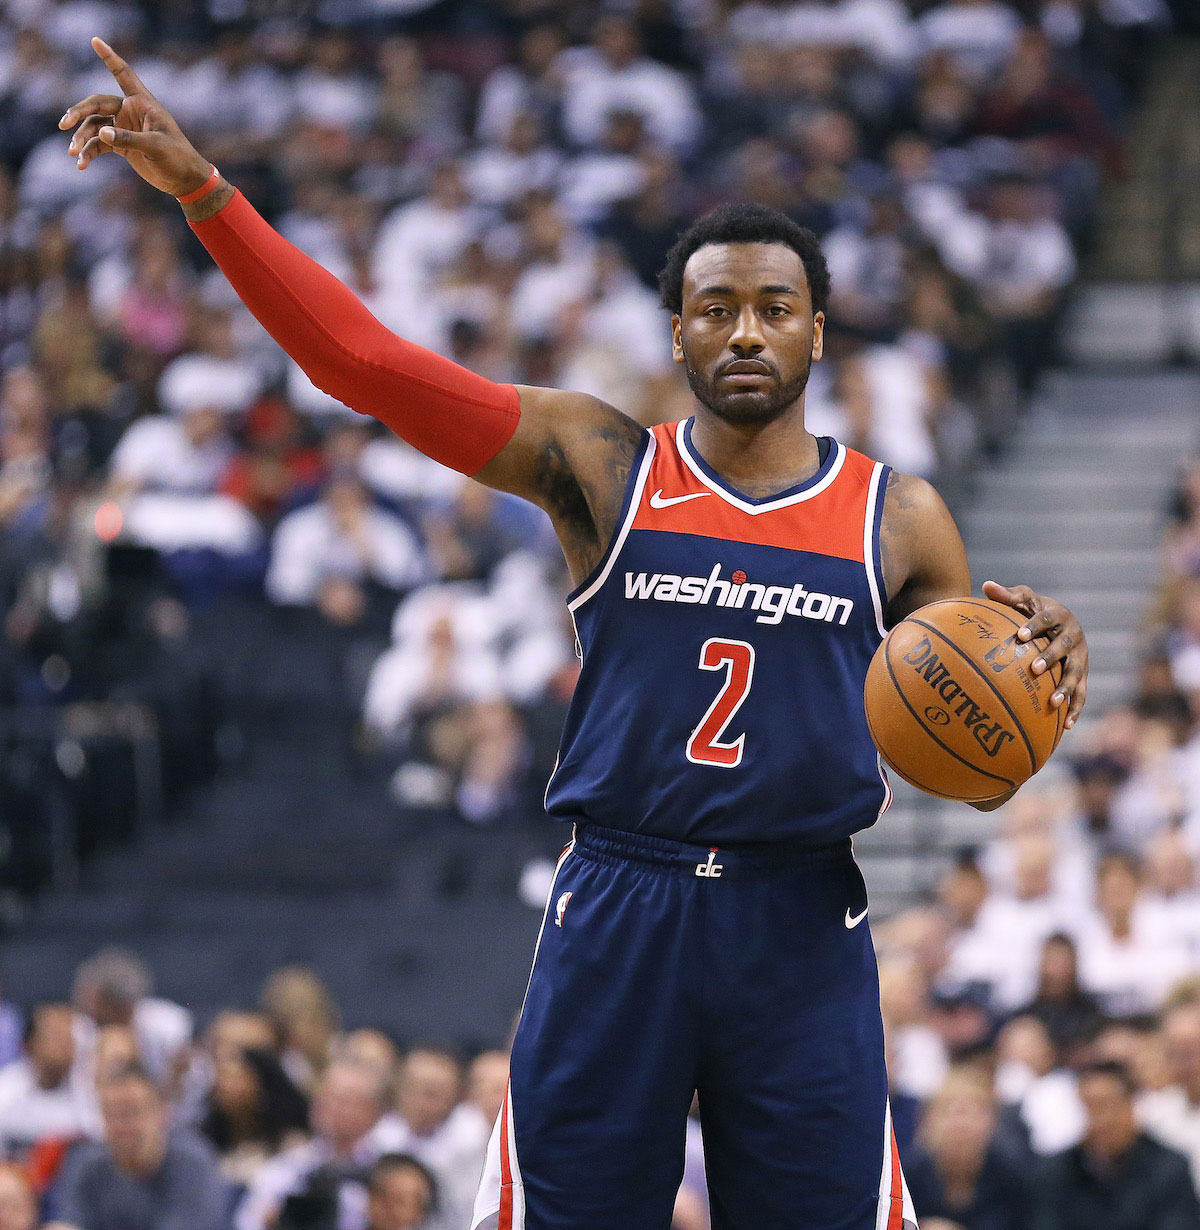 John Wall #2 of the Washington Wizards sets up a play against the Toronto Raptors in Game Two of the Eastern Conference First Round in the 2018